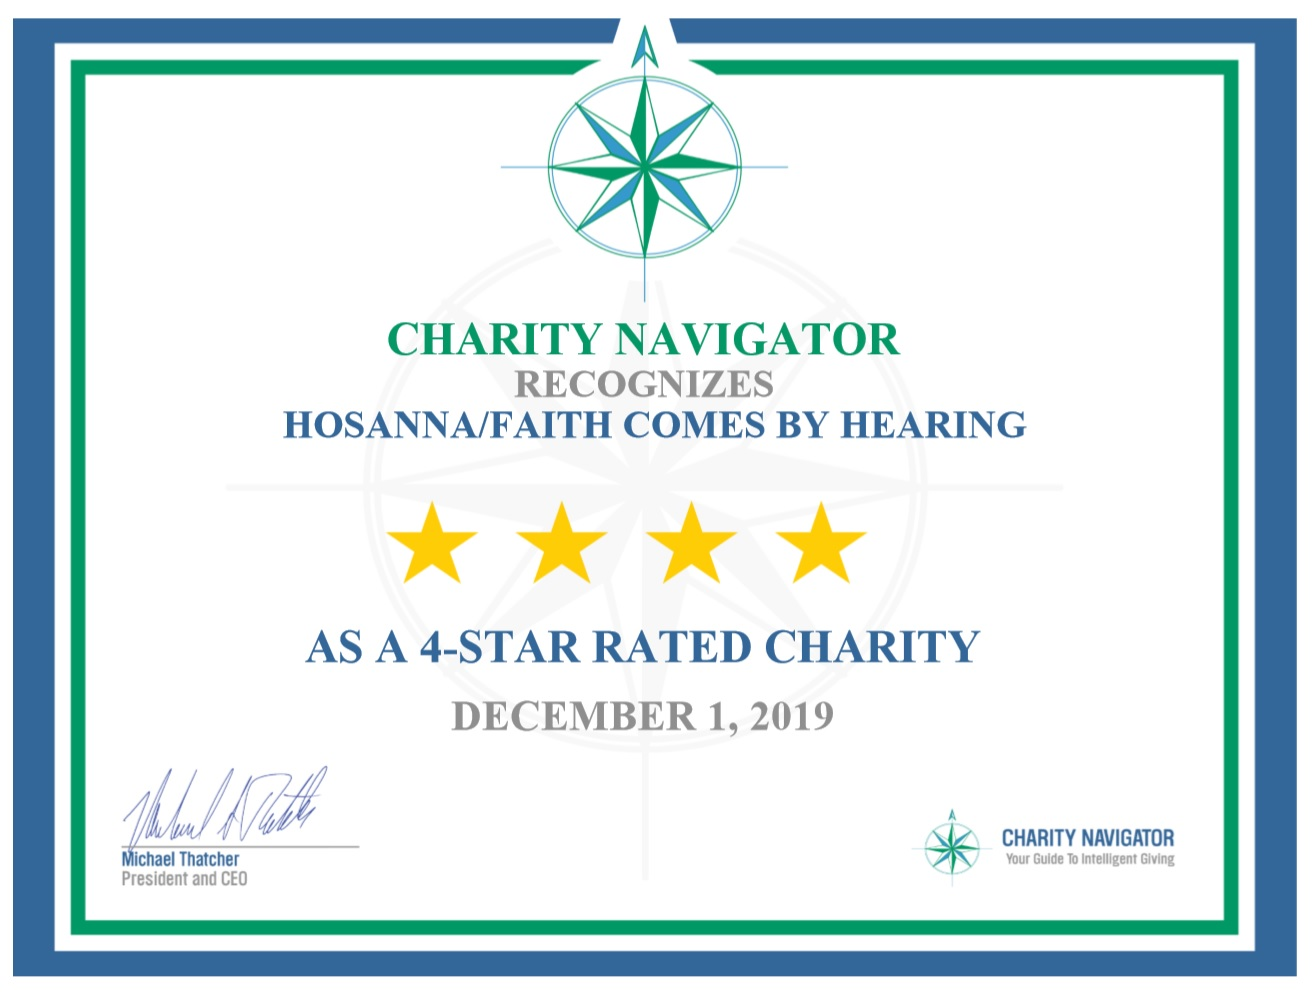 FAITH COMES BY HEARING EARNS COVETED 4-STAR RATING FROM CHARITY NAVIGATOR